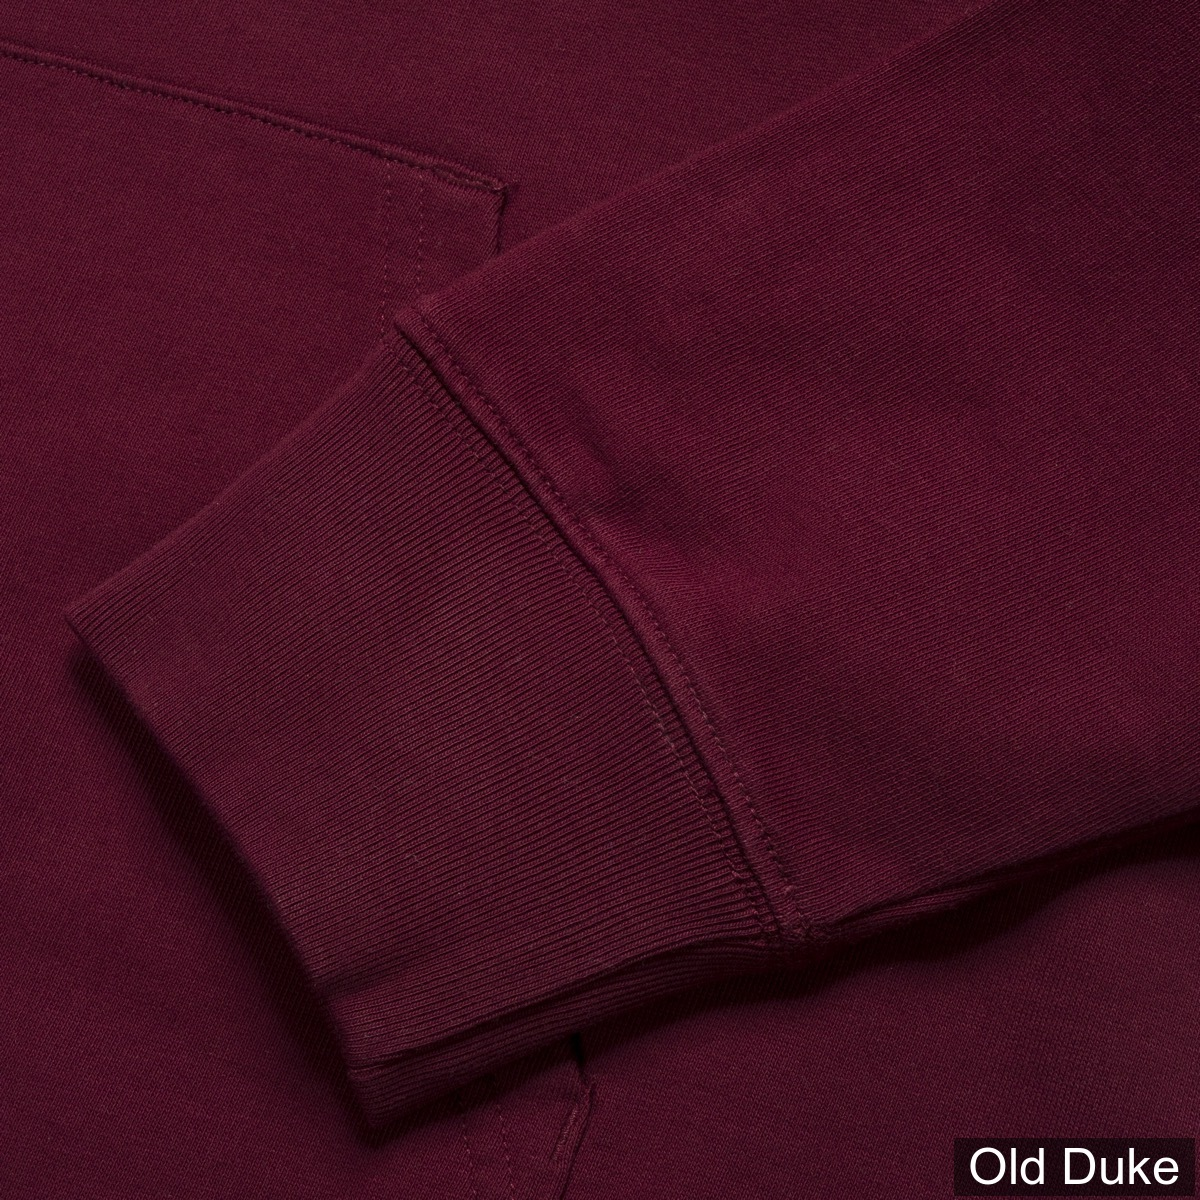 SWEAT SHIRT A CAPUCHE - CARHARTT WORK IN PROGRESS - HOODED DIVISION - CHIANTI / MULTICOLOR - TAILLE  : M